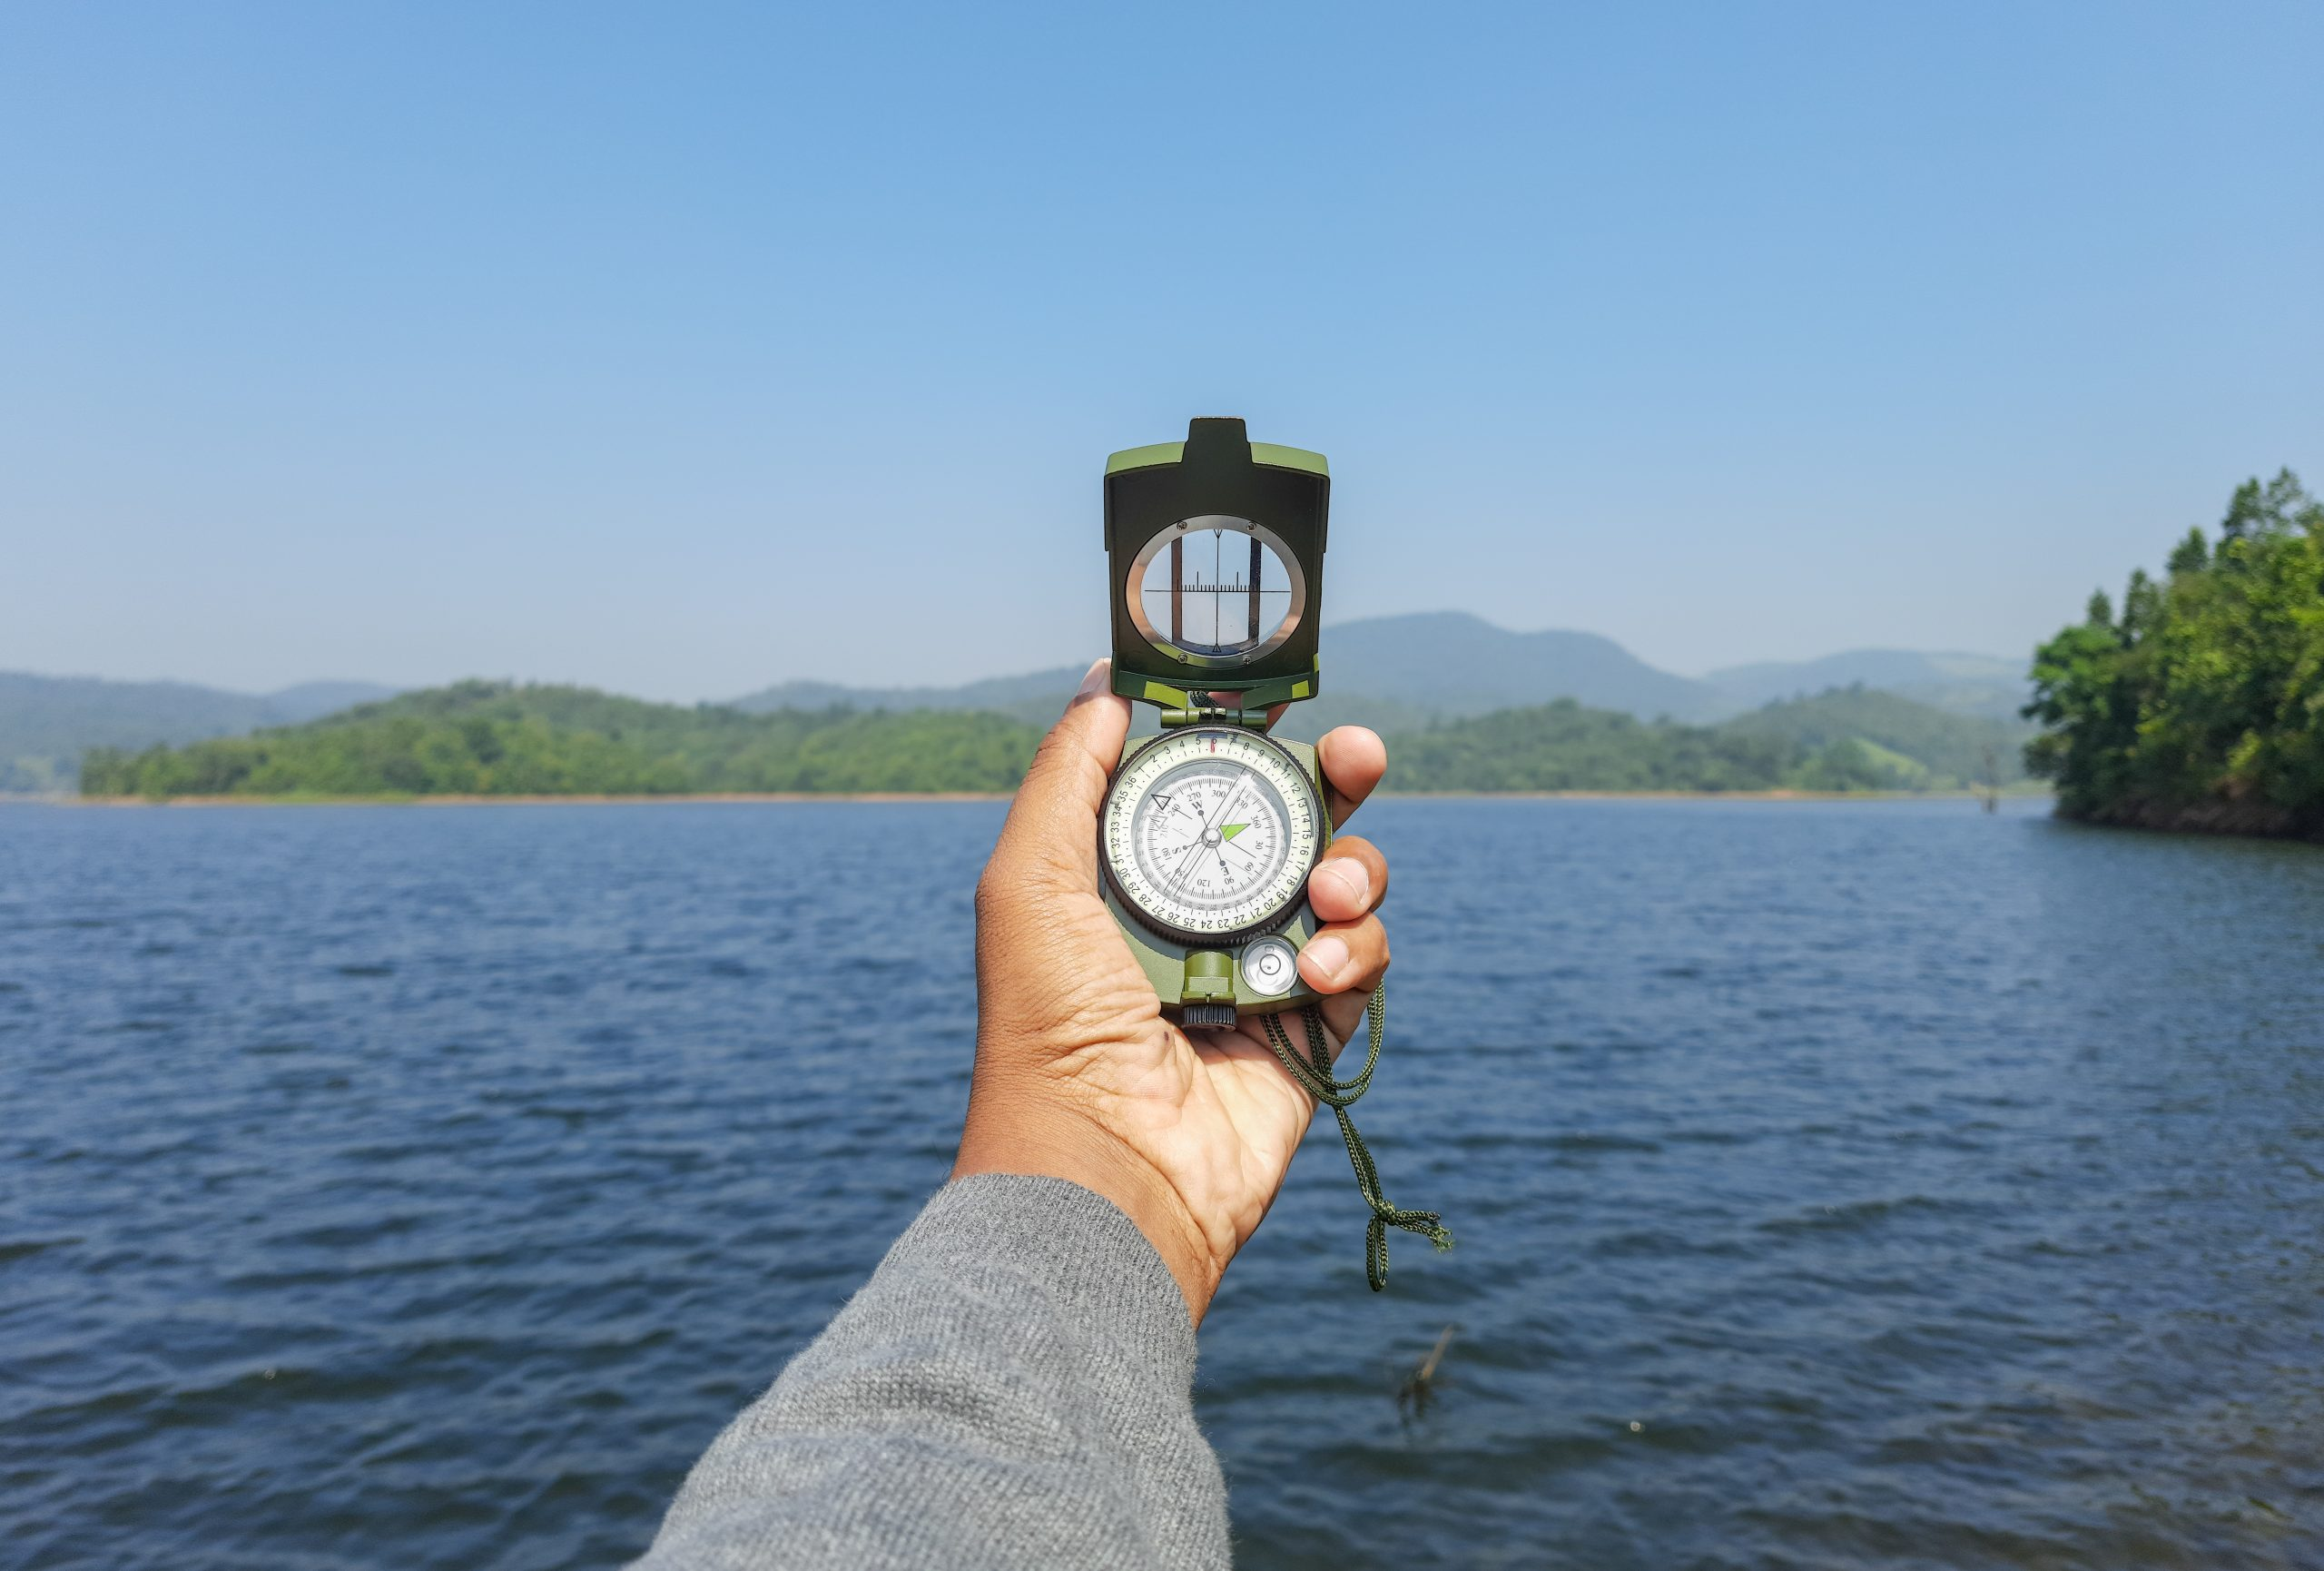 A magnetic compass in hand